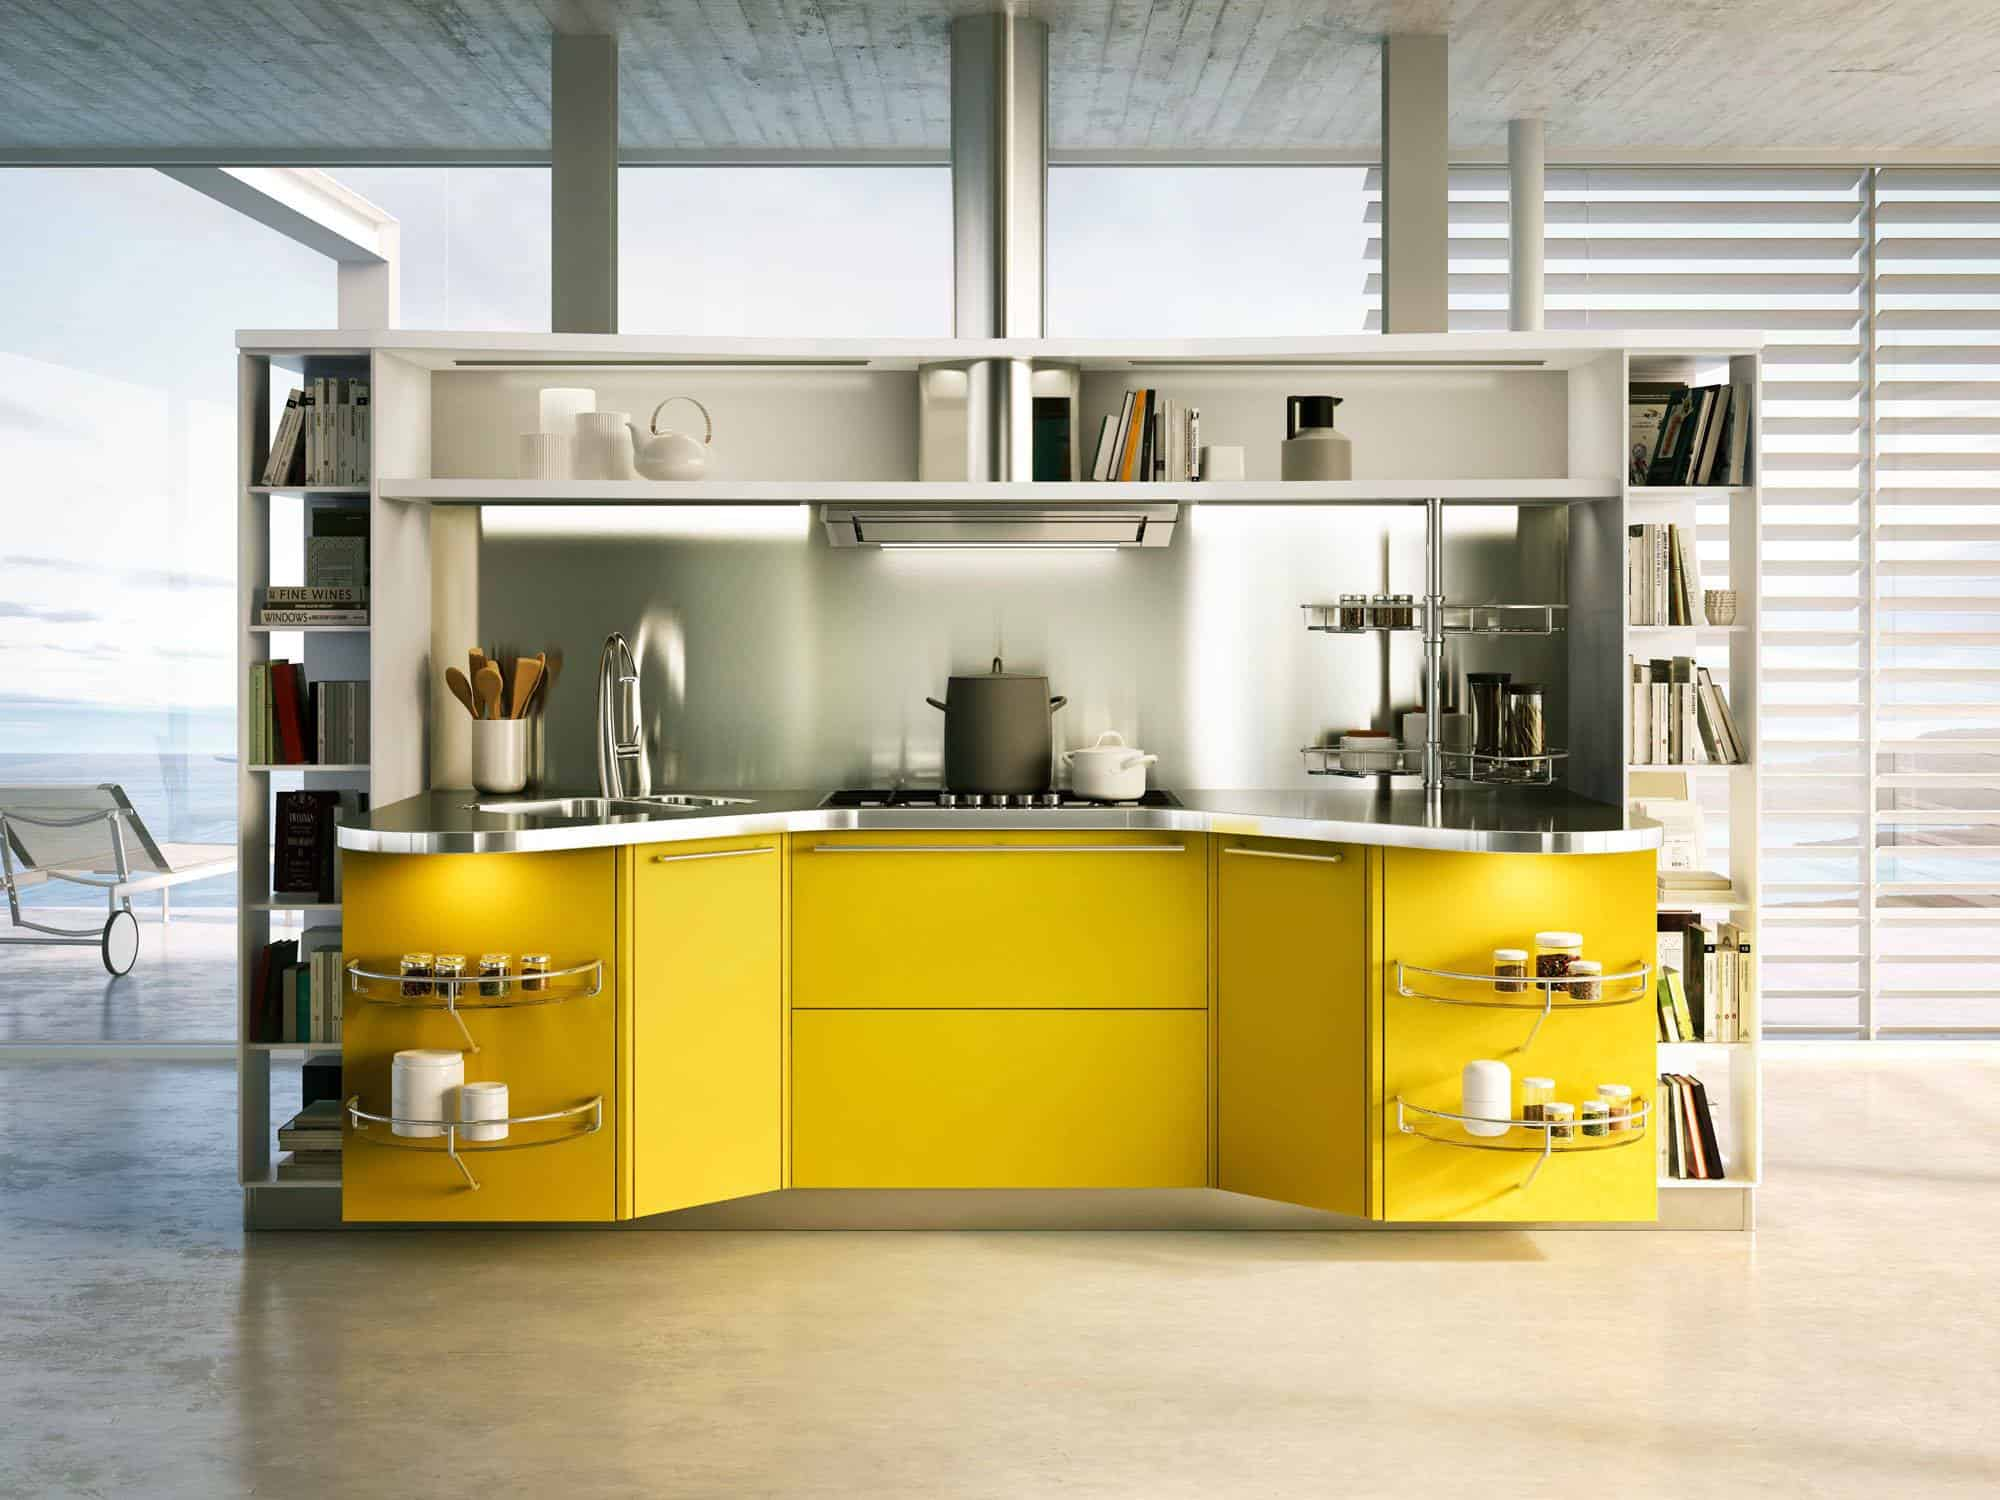 Special Needs Kitchens By Snaidero: Skyline Lab